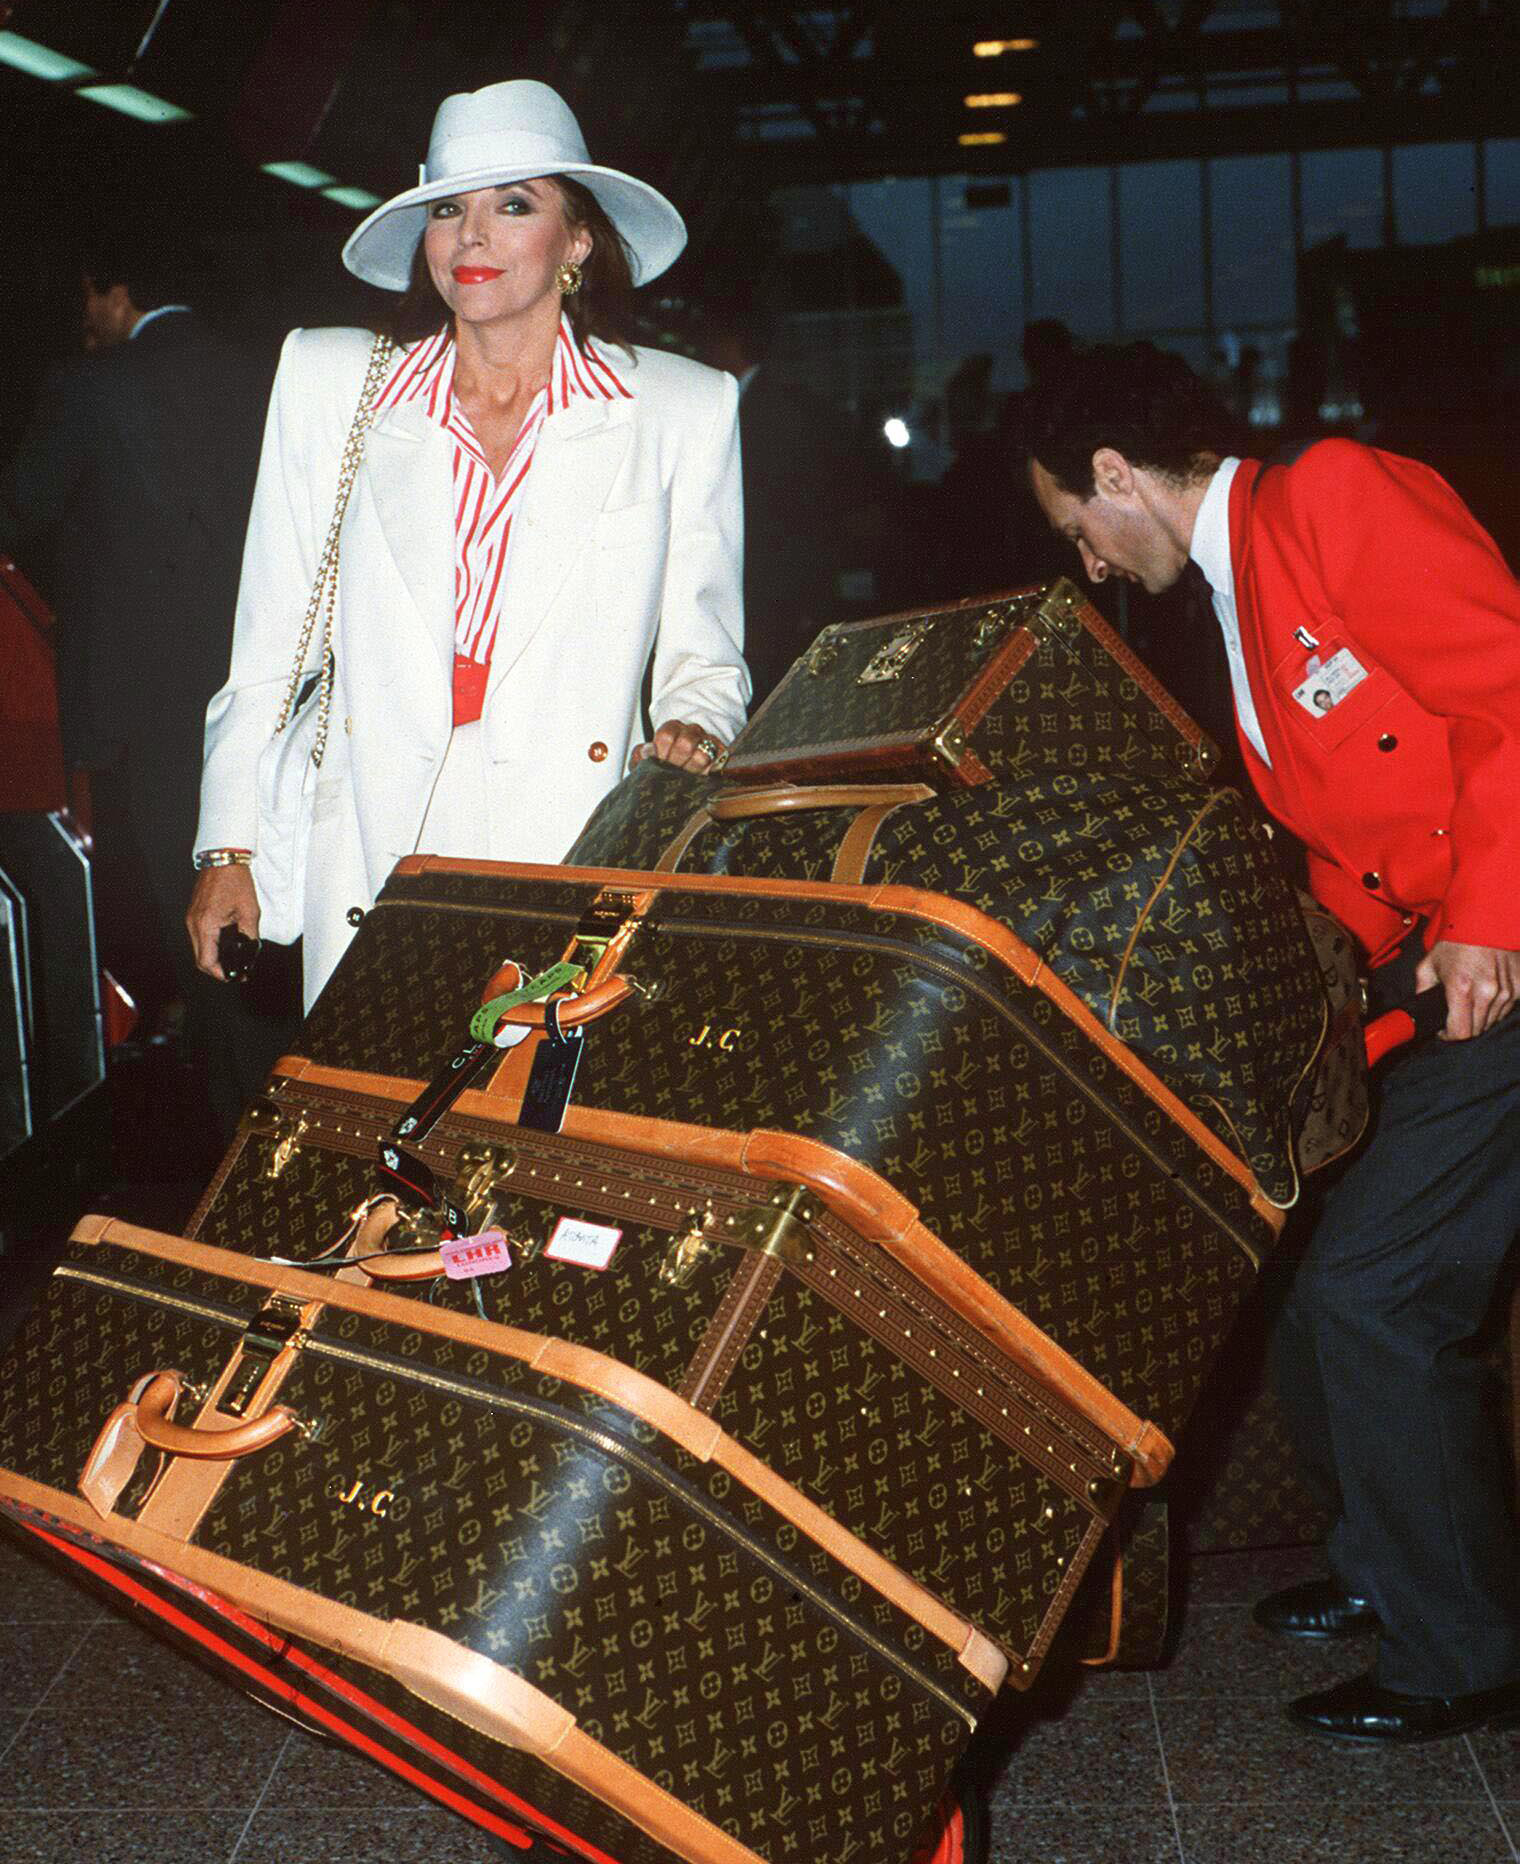 Luggage That Will Standout at Baggage Claim